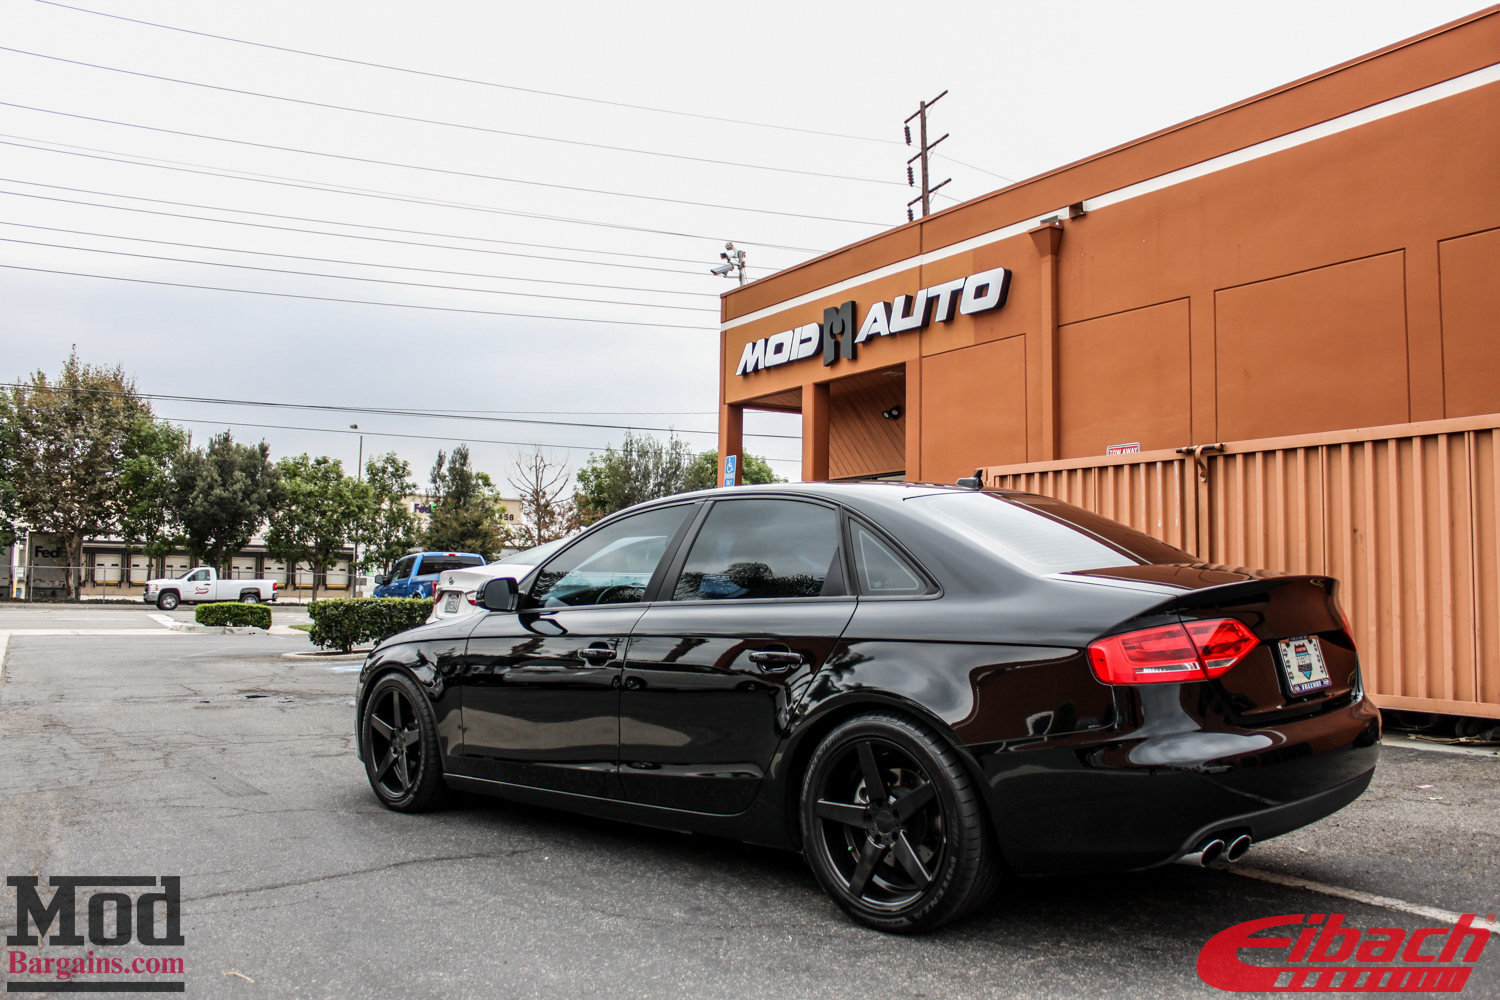 B8 Audi A4 Lowered On Eibach Springs Modauto